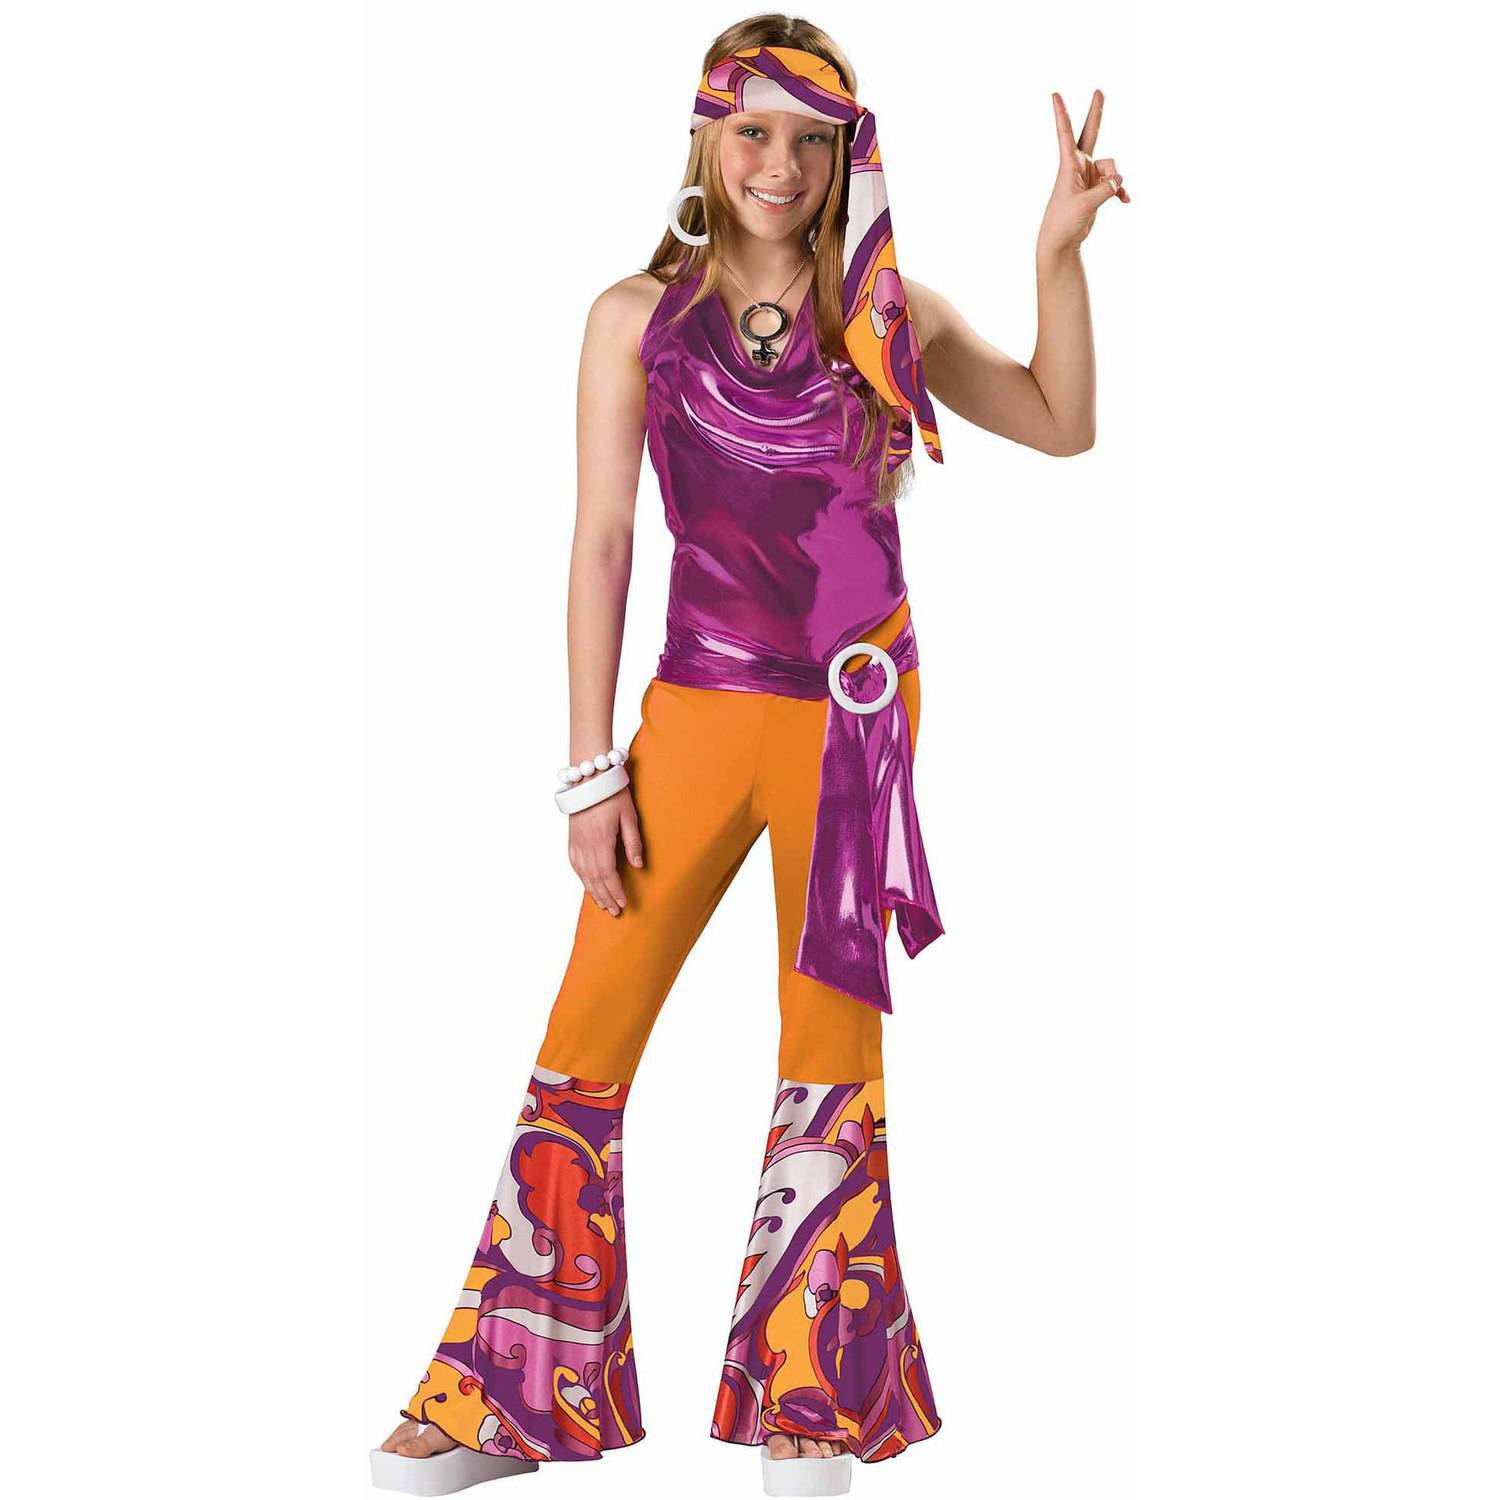 dancing queen girls teen halloween costume walmartcom - 80s Dancer Halloween Costume